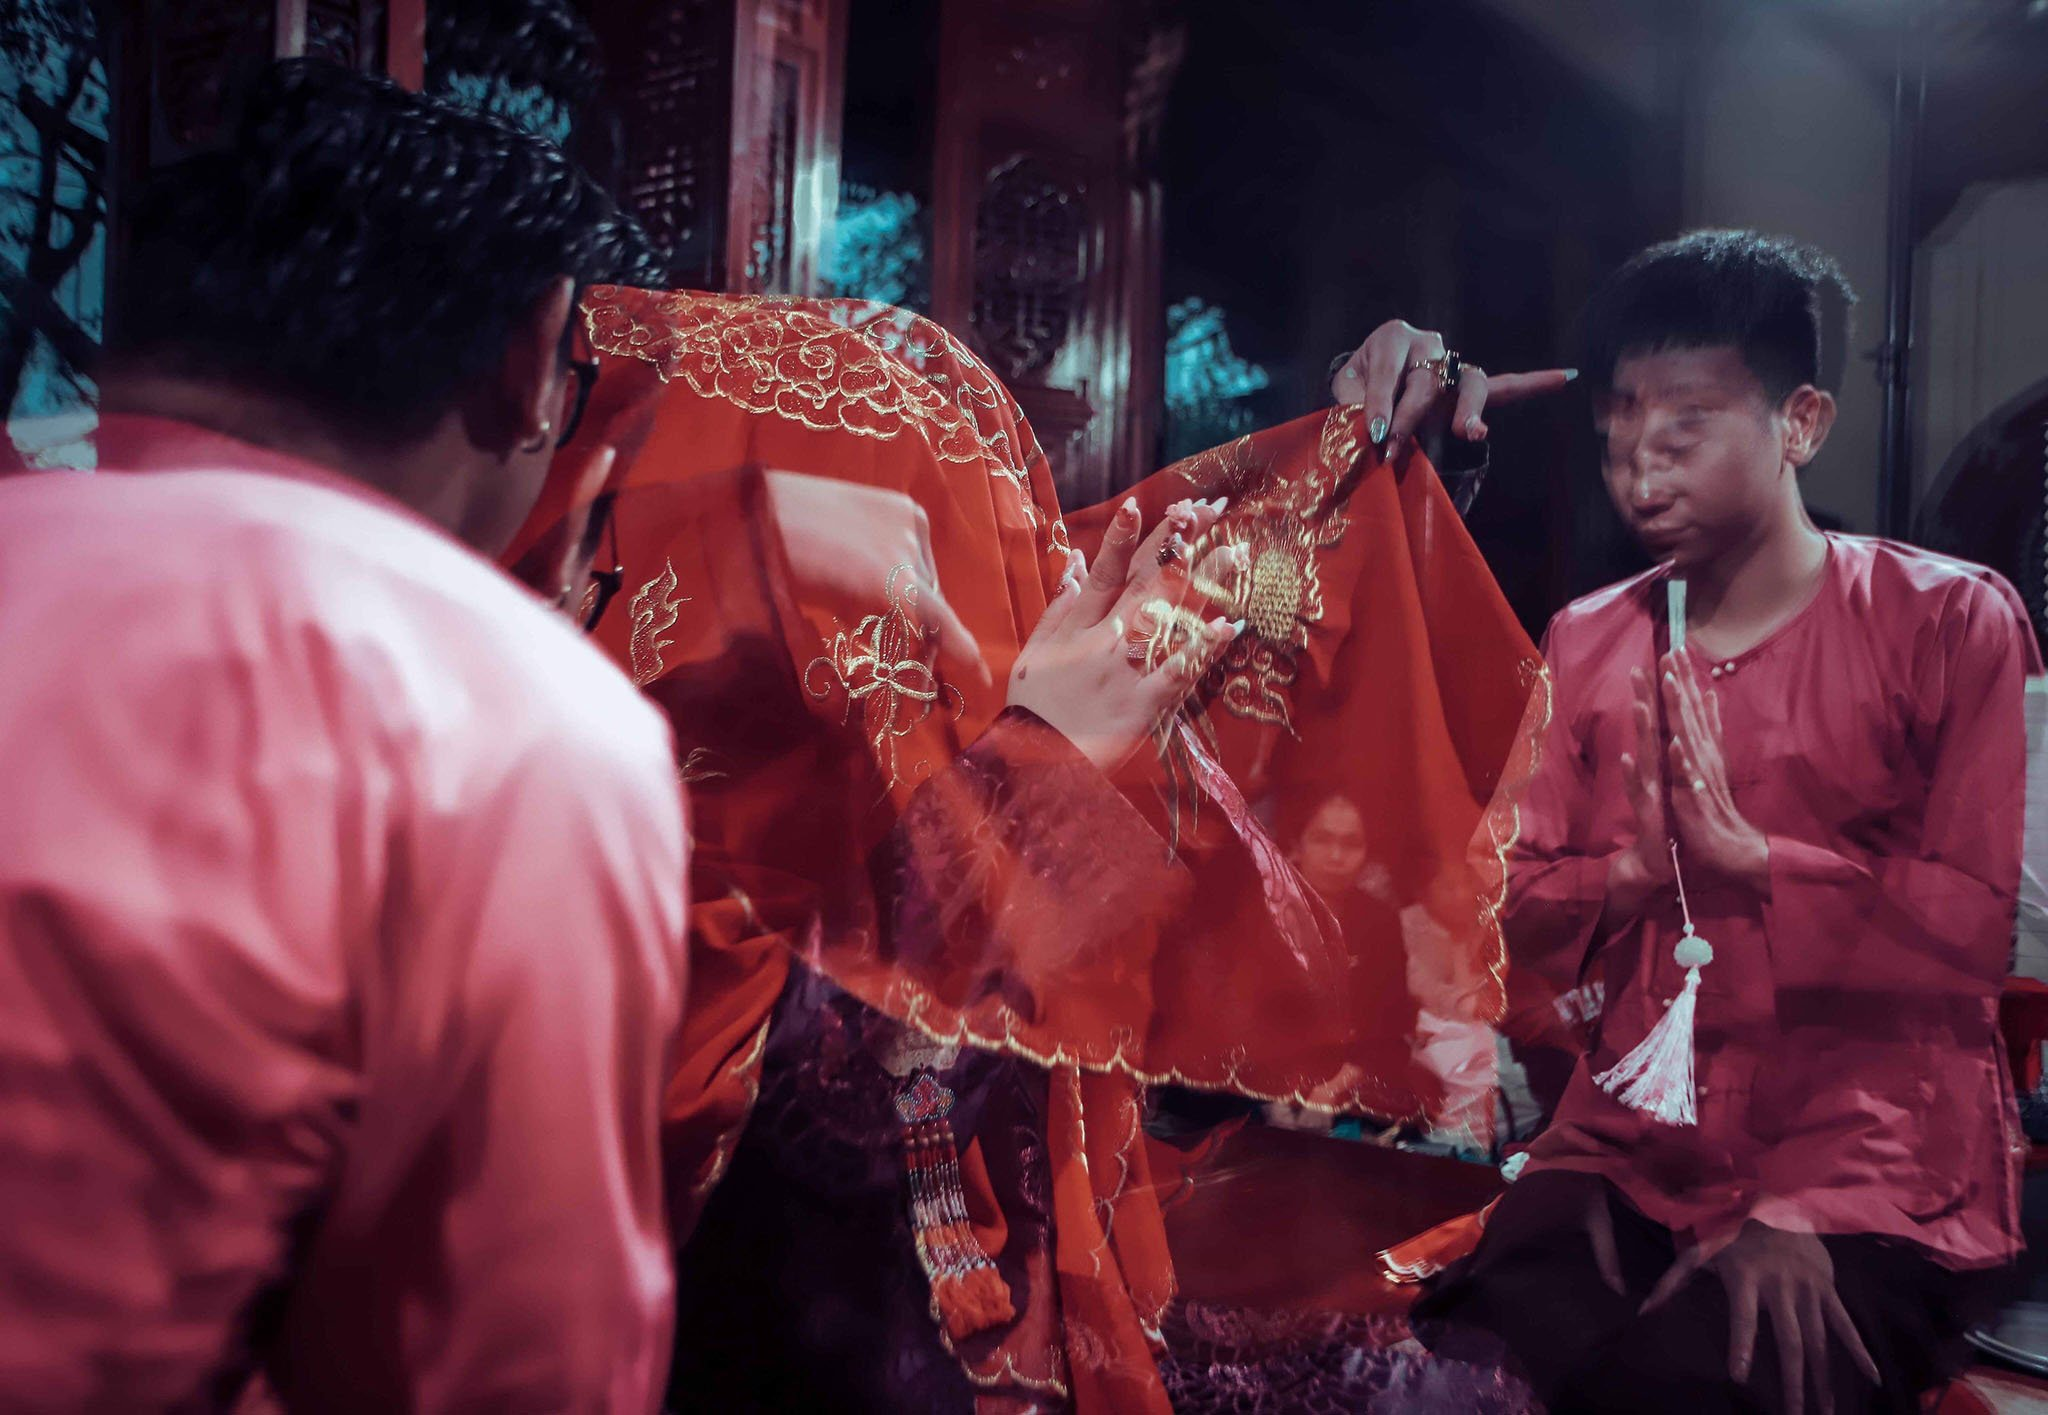 Loading suspected-ceremony-virtually-dong-Nguyen-Phuong-18.jpg ...